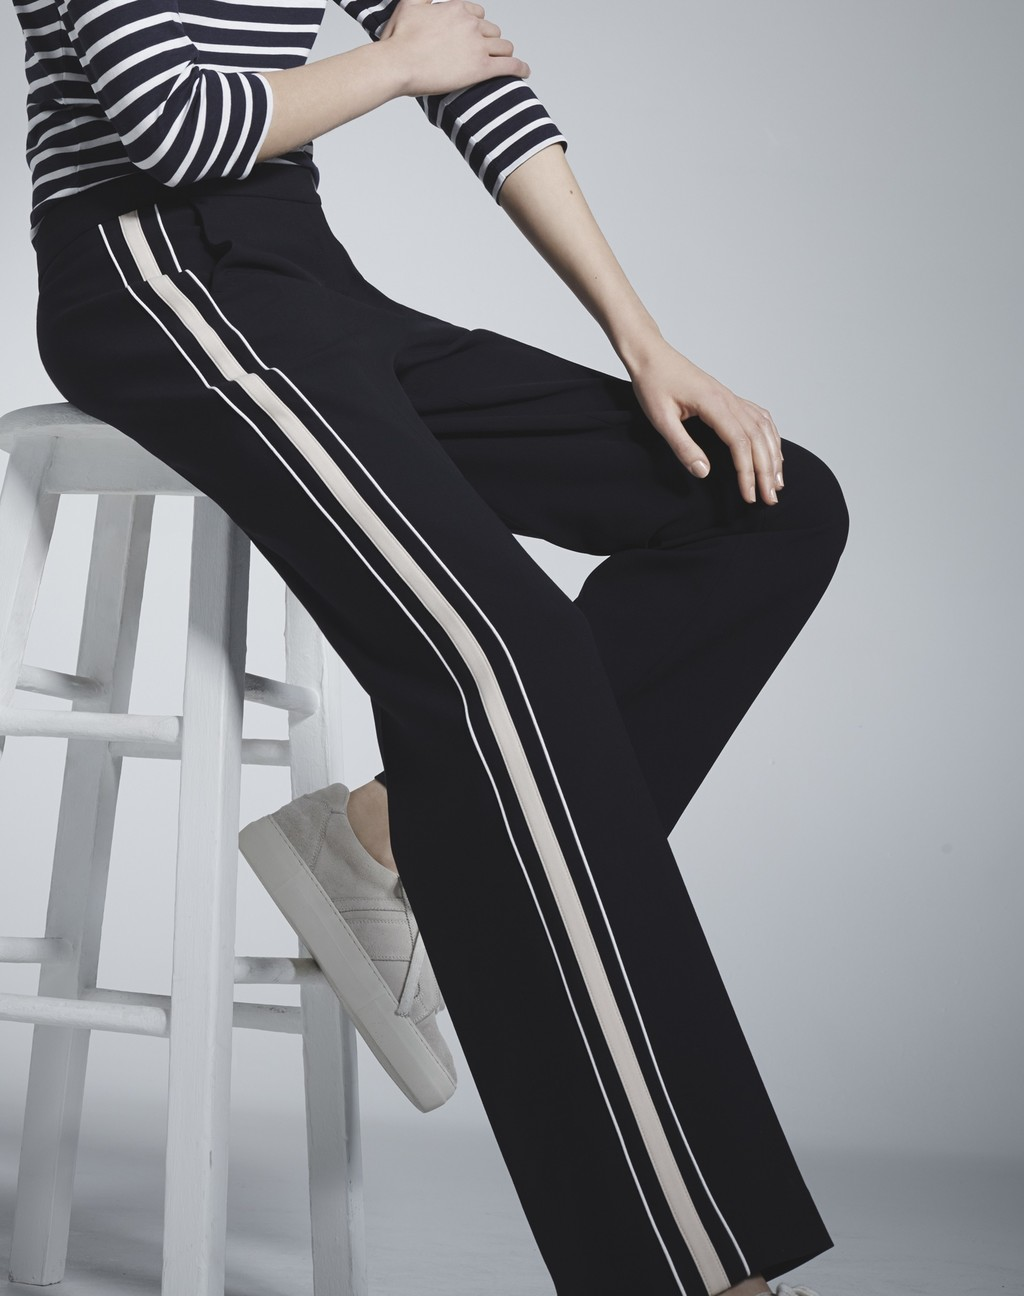 Side Stripe Trouser Navy/Oyster/White - length: standard; pattern: striped; waist: high rise; predominant colour: navy; occasions: casual, creative work; fibres: cotton - mix; trends: monochrome; texture group: crepes; fit: straight leg; pattern type: fabric; style: standard; season: s/s 2016; wardrobe: highlight